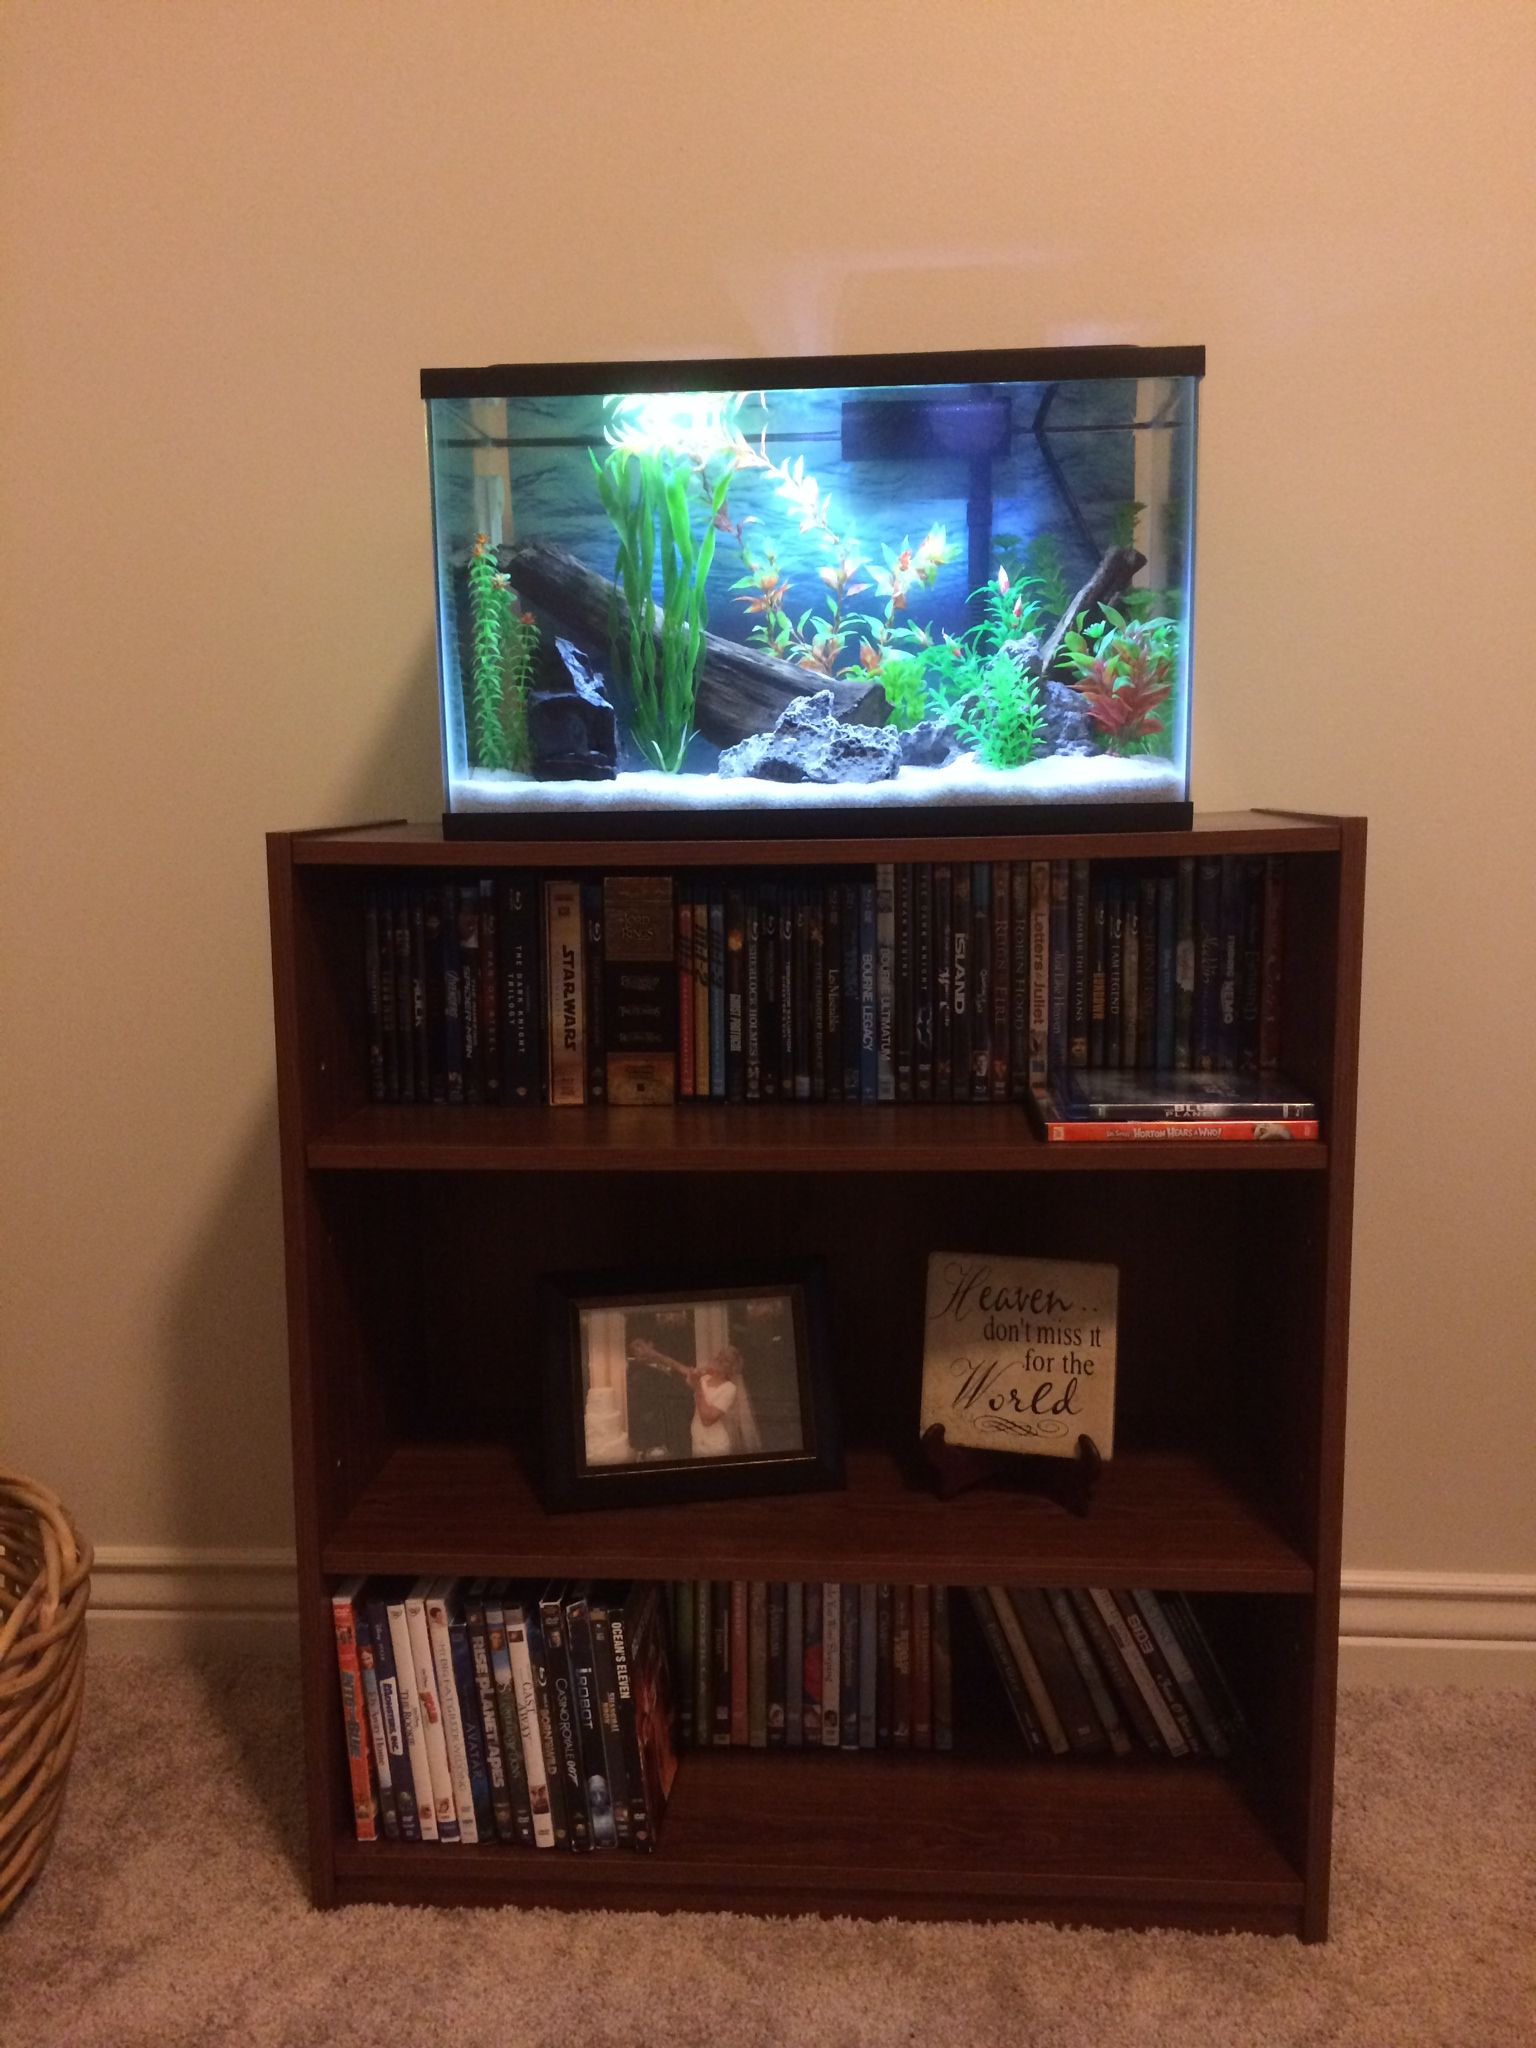 10 Gallon Tank On Bookcase Stand 10 Gallon Fish Tank Fish Tank Stand Tank Stand